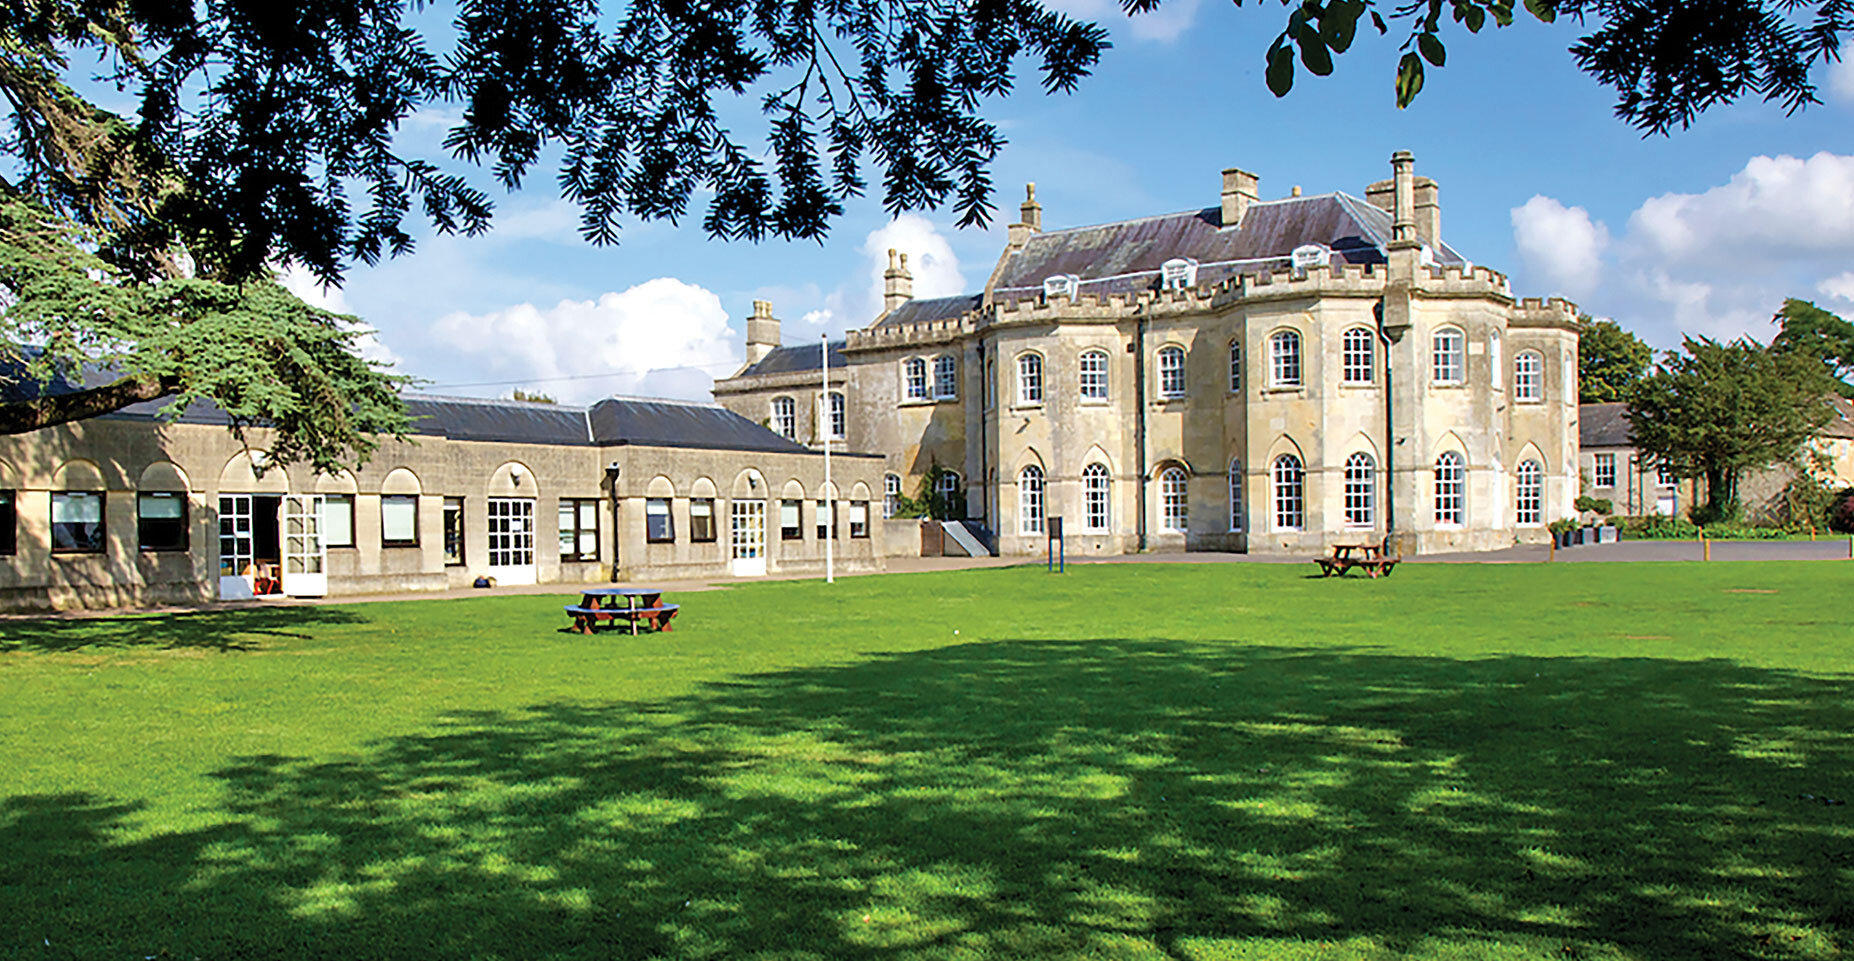 STONAR SCHOOL WILTSHIRE, UK - Course information● Dates July - August 2020● Course length 1 – 6 Weeks● Class size 8 – 14● Staff to student ratioin class 1 : 14 maximumin activities 1 : 15 maximumin boarding 1 : 20 maximum● Age 9 – 15● Levels All● Hours of English per week 30● Week 7 days (Sunday - Sunday)● Accommodation Residential and Homestay